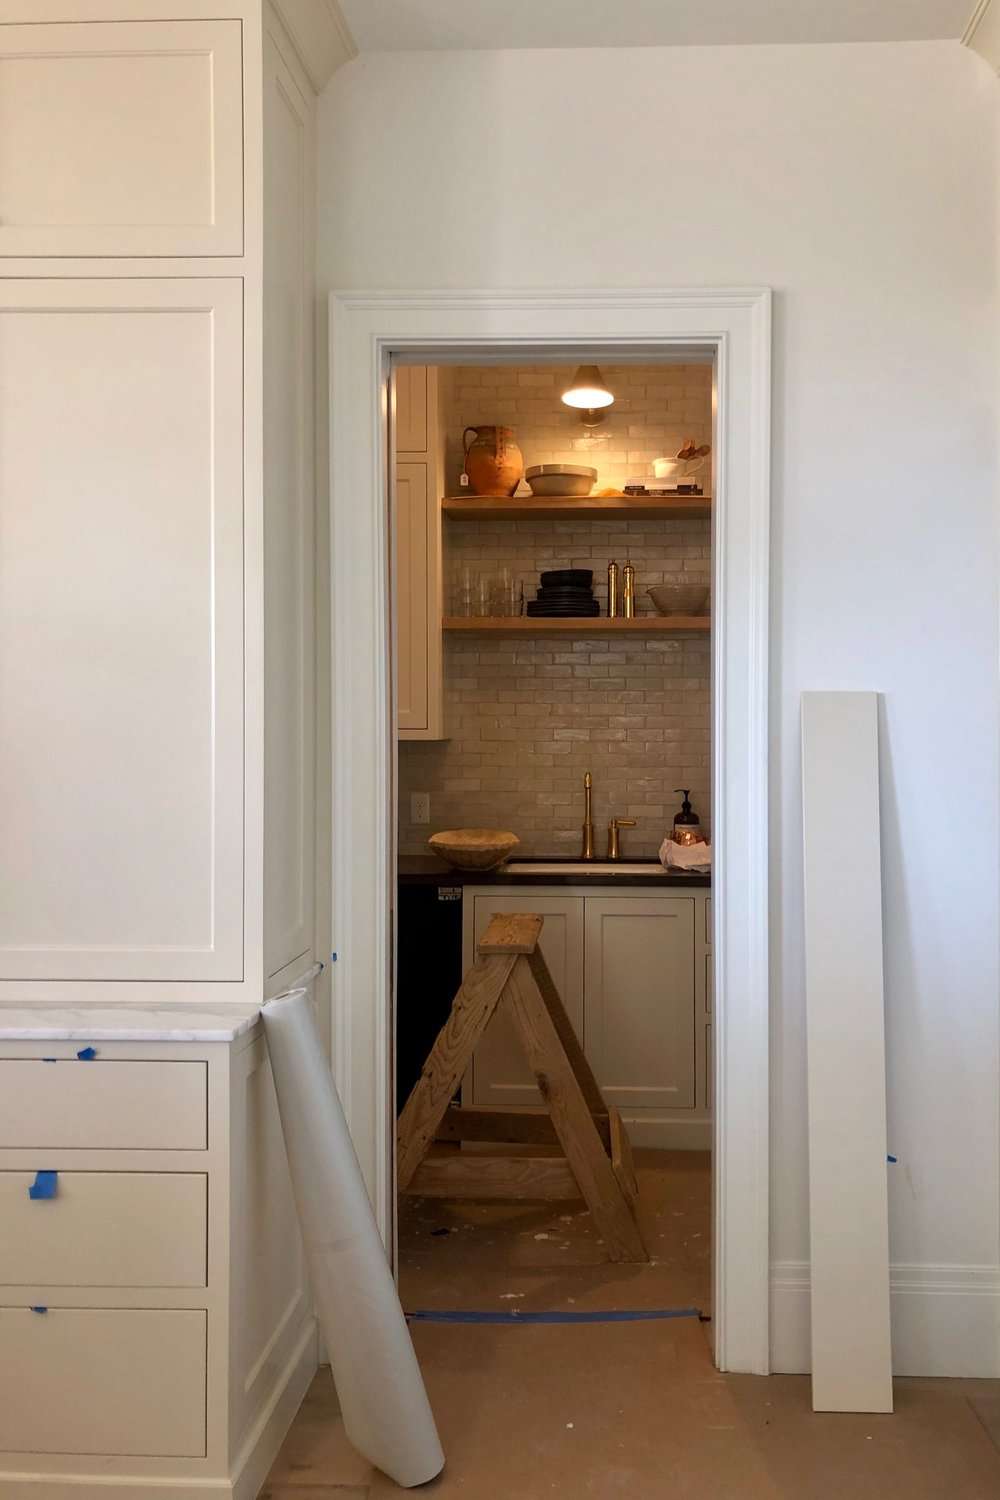 A sneak peak into one of our favorite rooms, the pantry!